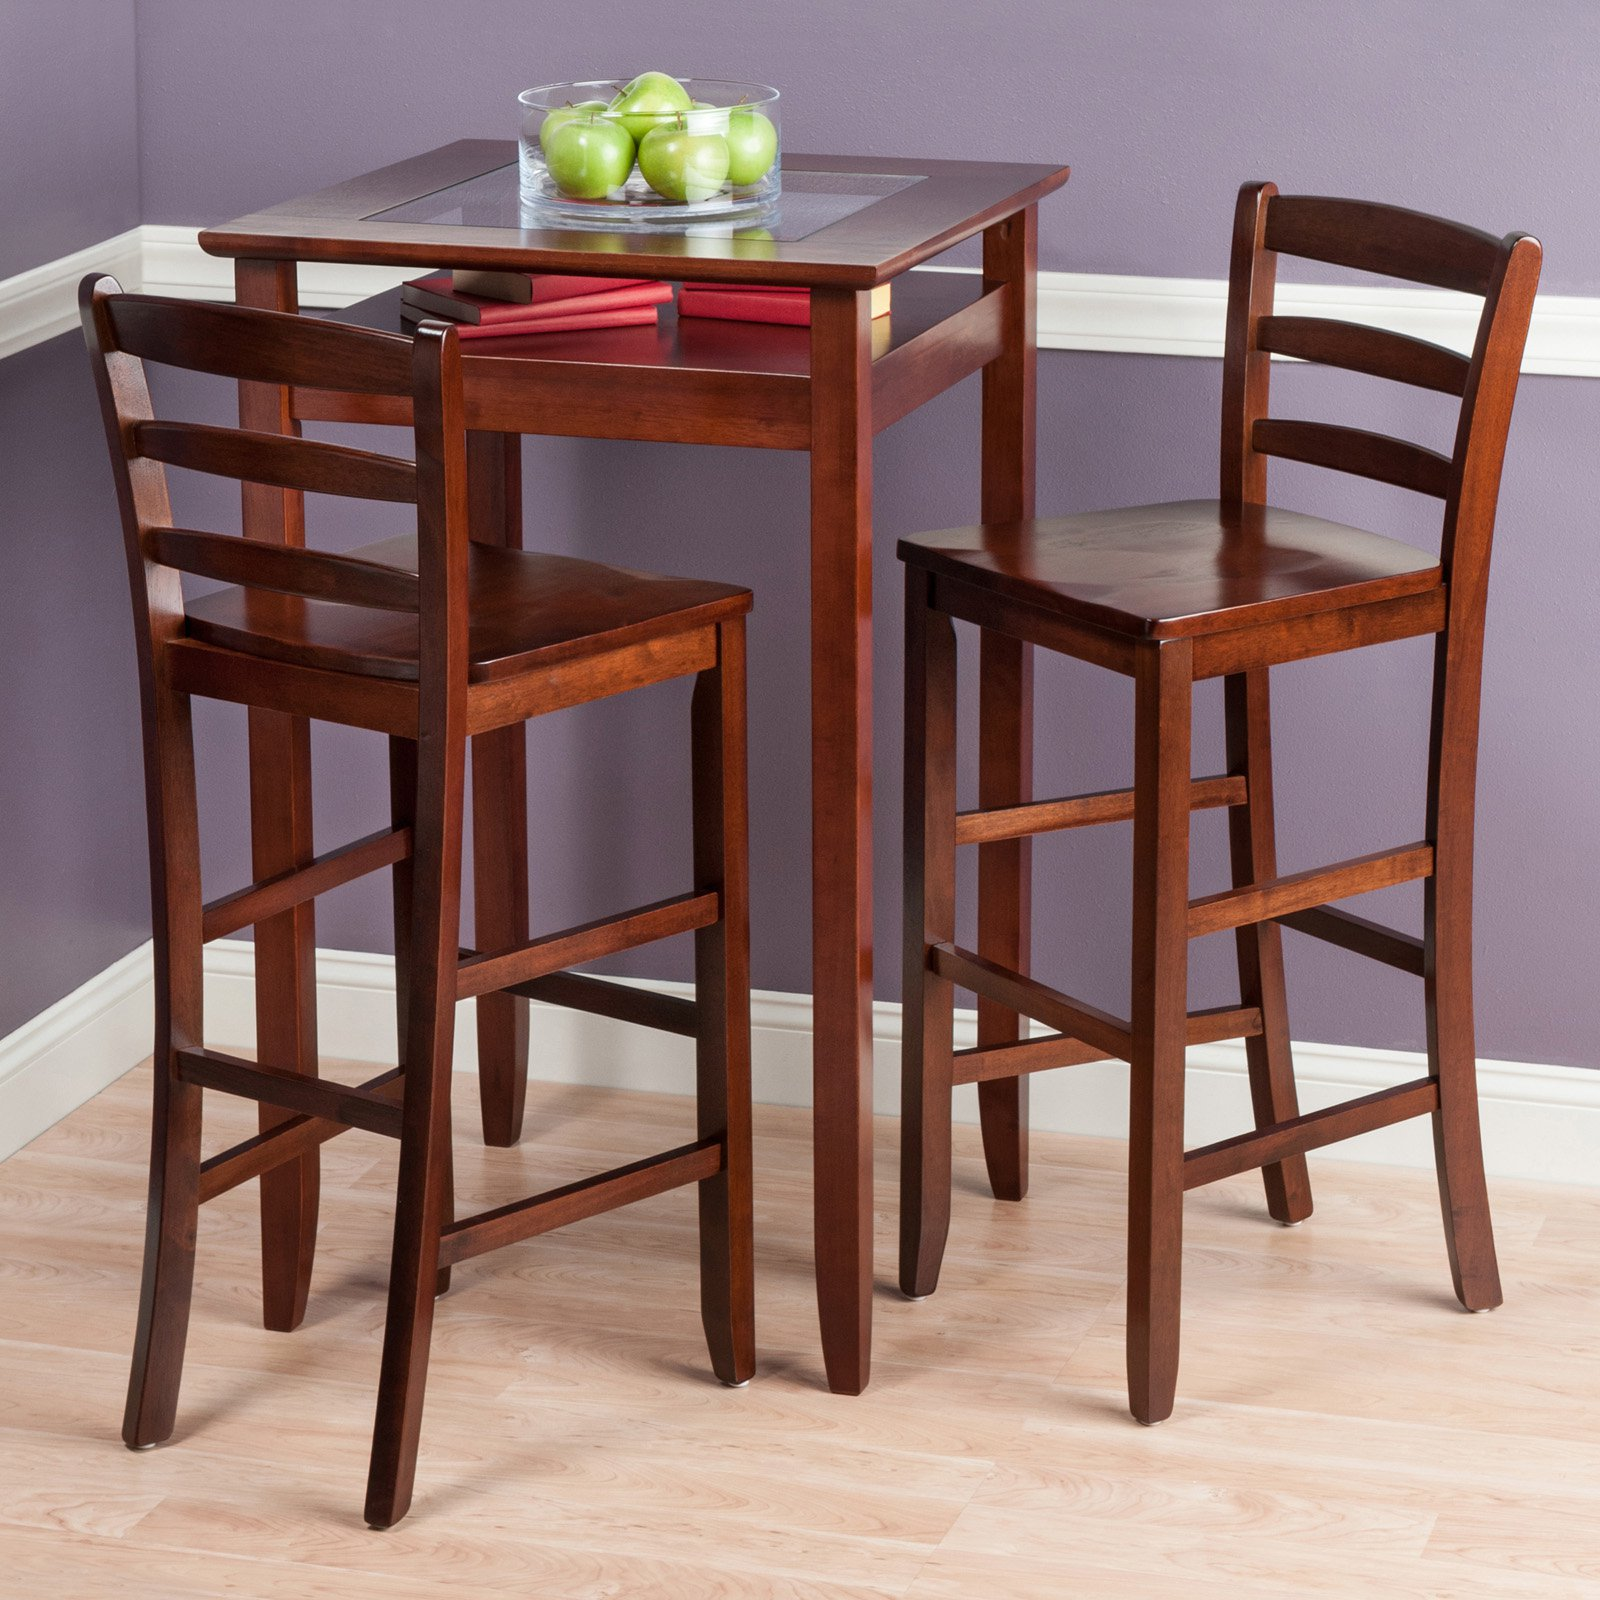 Halo 3pc Pub Table Set with 2 Ladder Back Stools by Winsome Wood